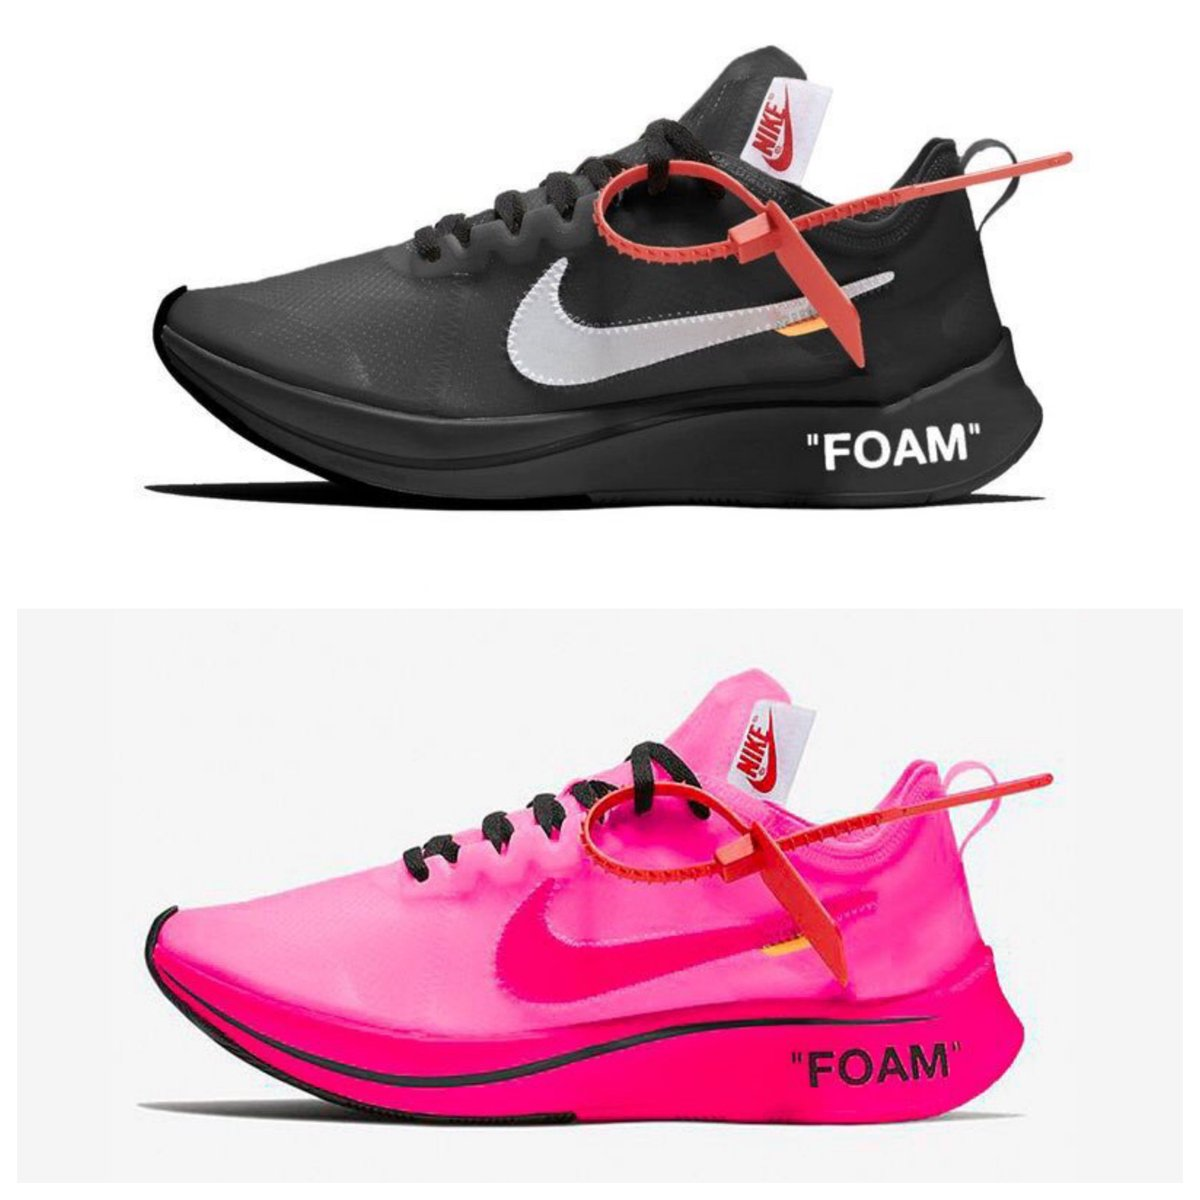 c10019a492 Both Off White x Nike Zoom Fly 'Black/White' & 'Tulip Pink' releasing next  month, October 15thpic.twitter.com/9XYyKI449Y